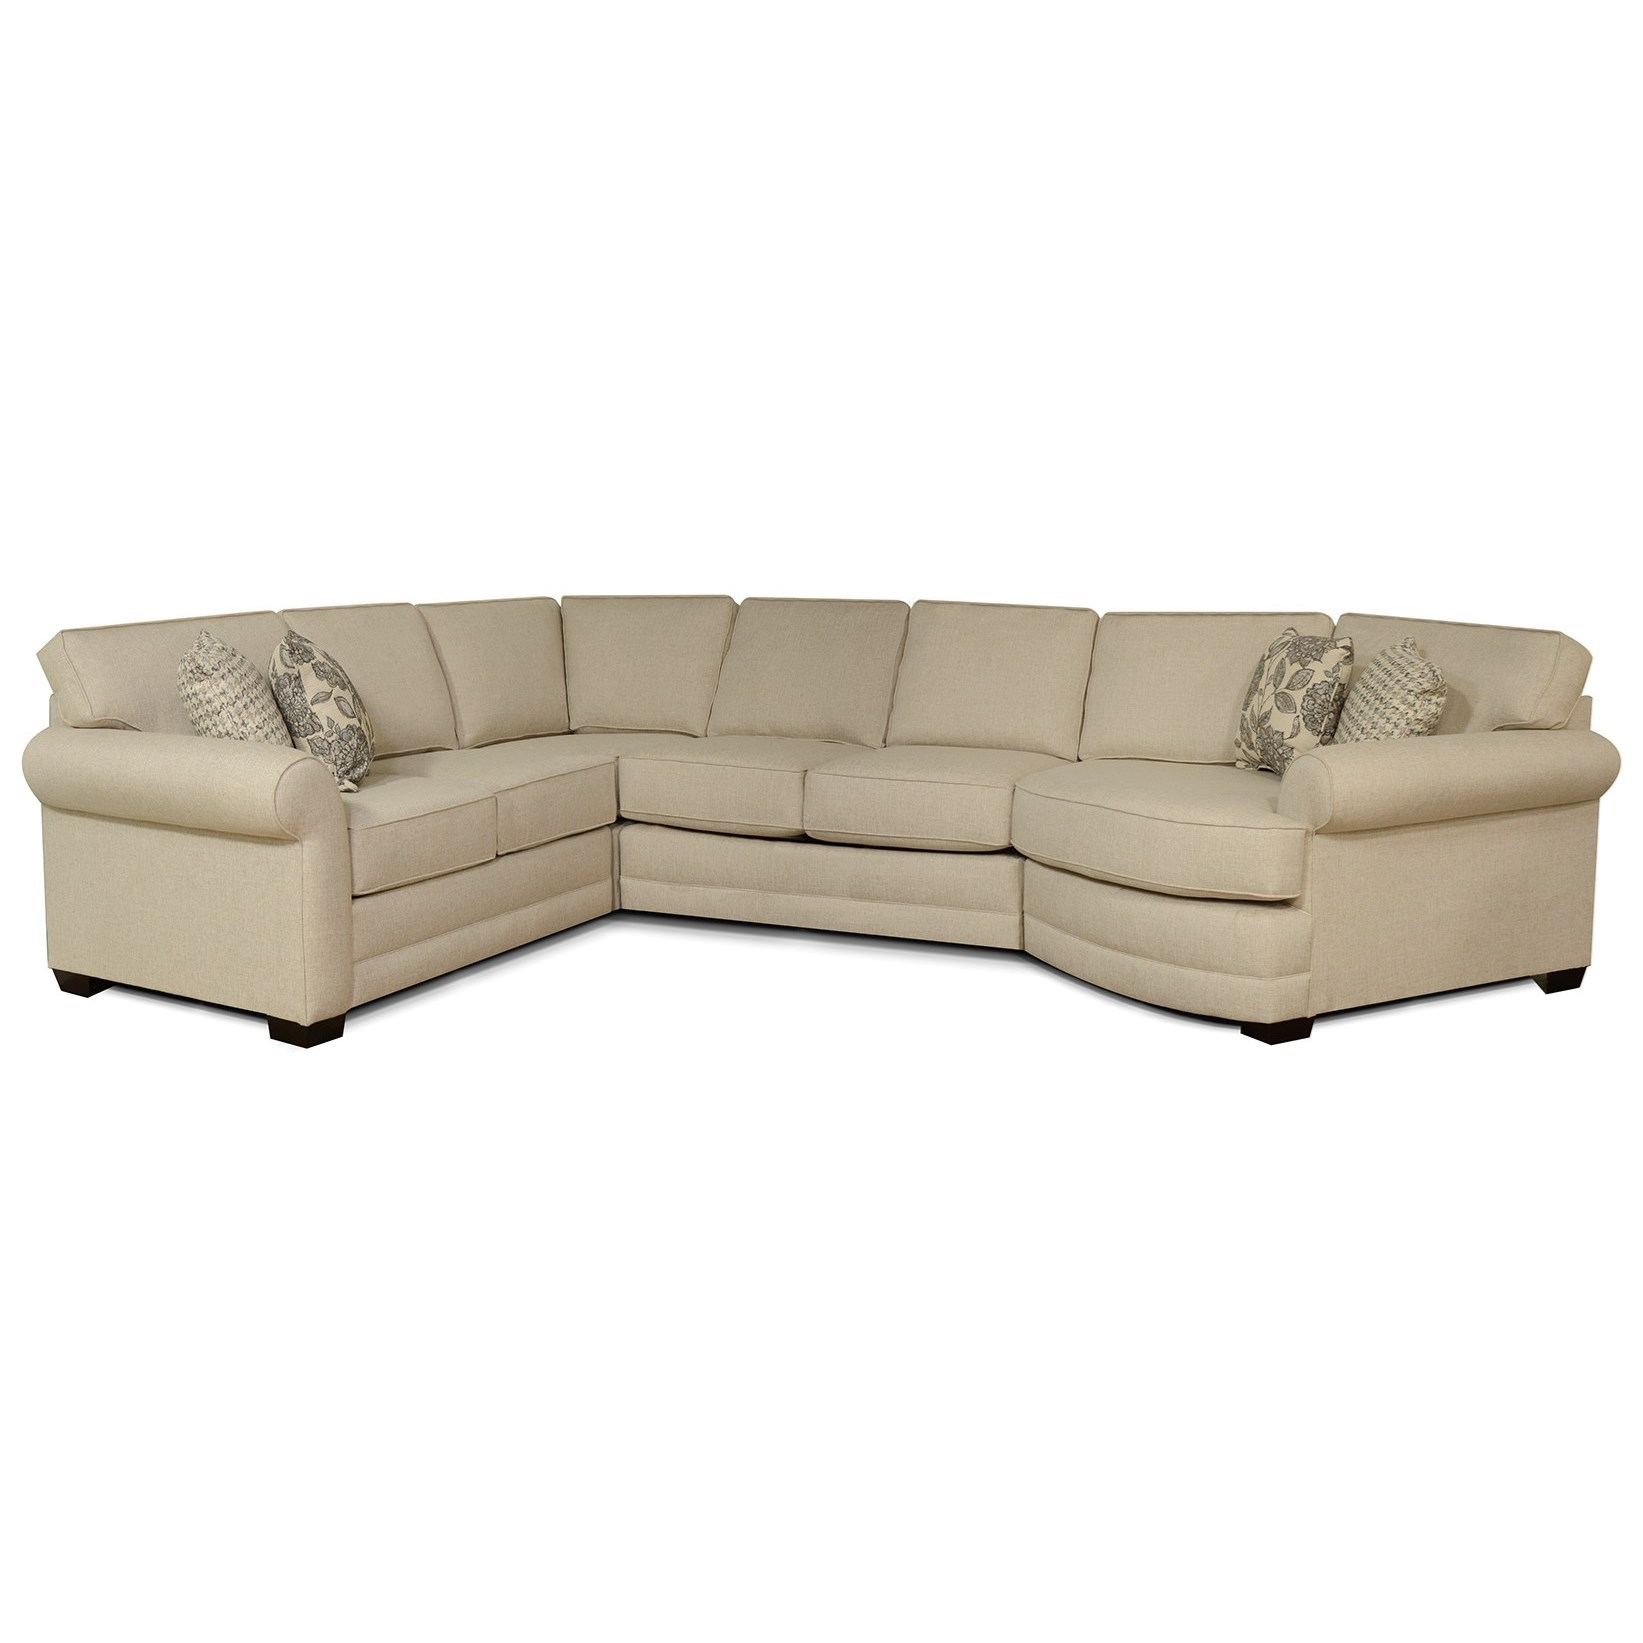 Brantley 5 Seat Sectional Sofa with Cuddler by England at Pilgrim Furniture  City